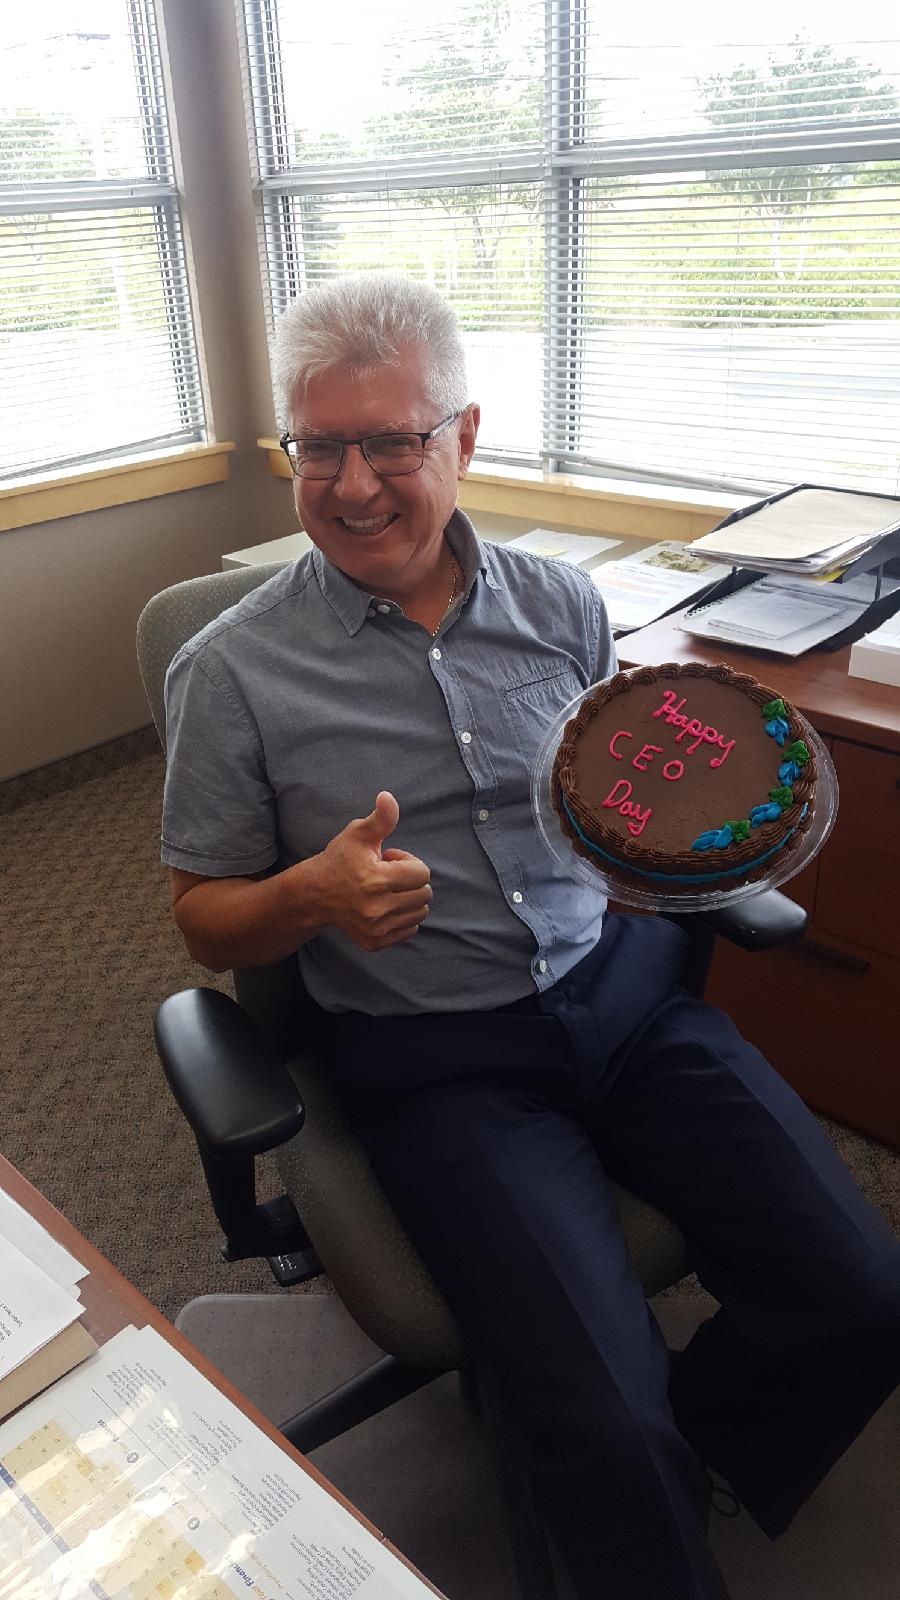 The first ever, CEO Day and it originated on August 22, 2019 from a great group of employees at PSCU! Thank-you everyone, Brian.